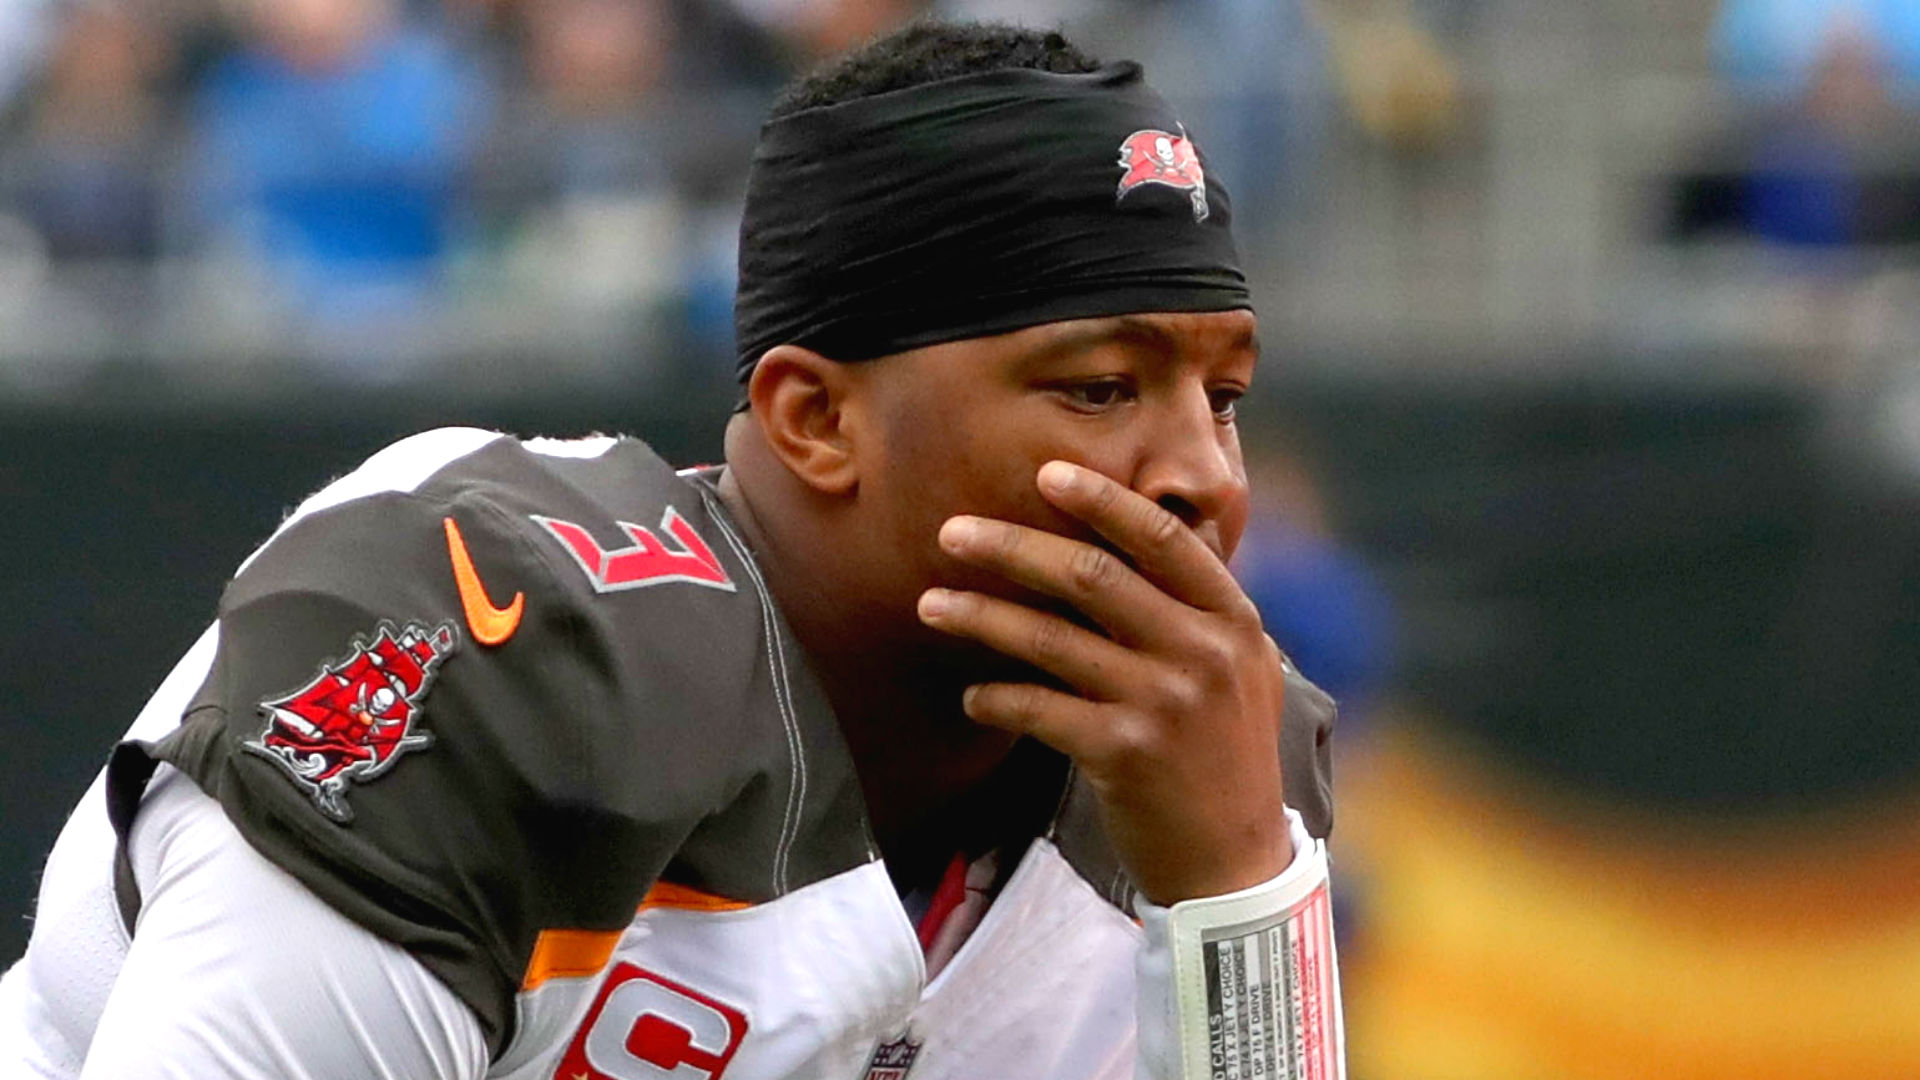 Bucs quarterback Jameis Winston officially suspended by NFL